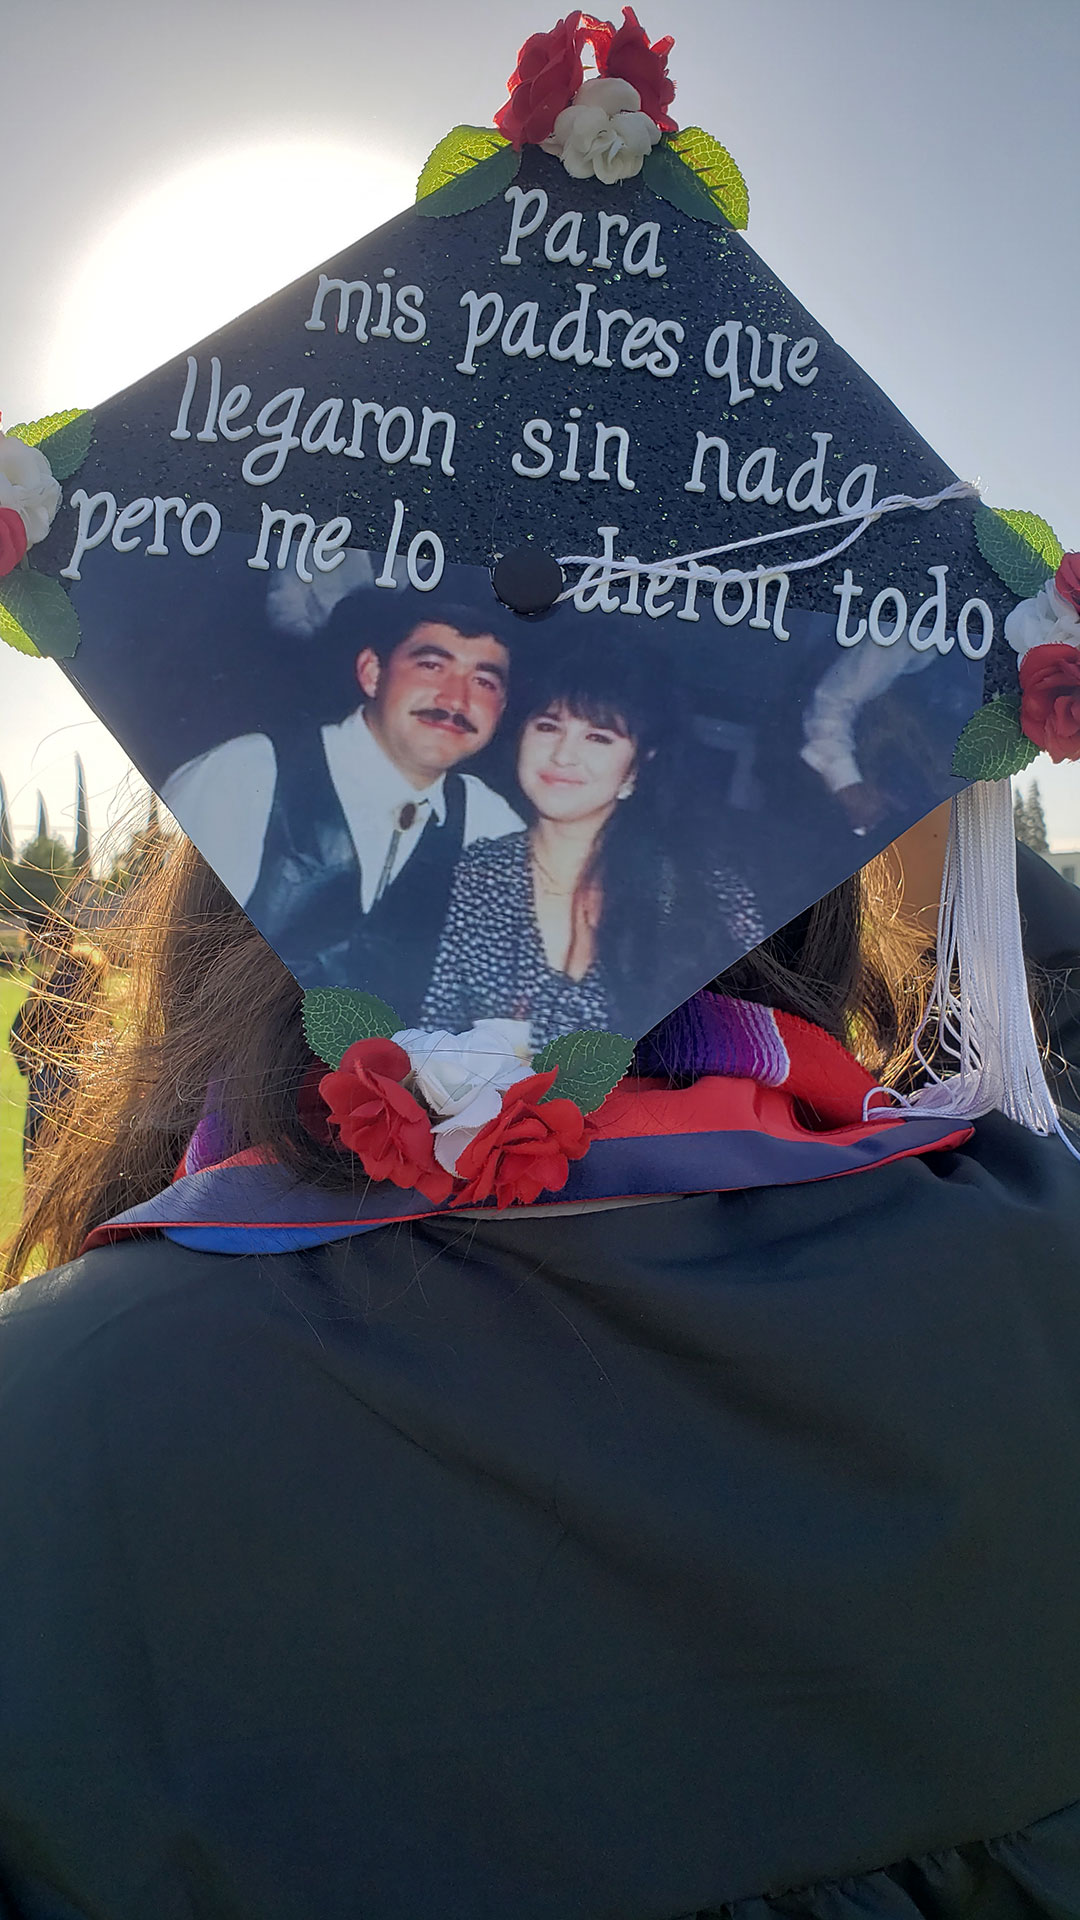 """Grad cap: """"For my parents who came with nothing but gave me everything."""""""